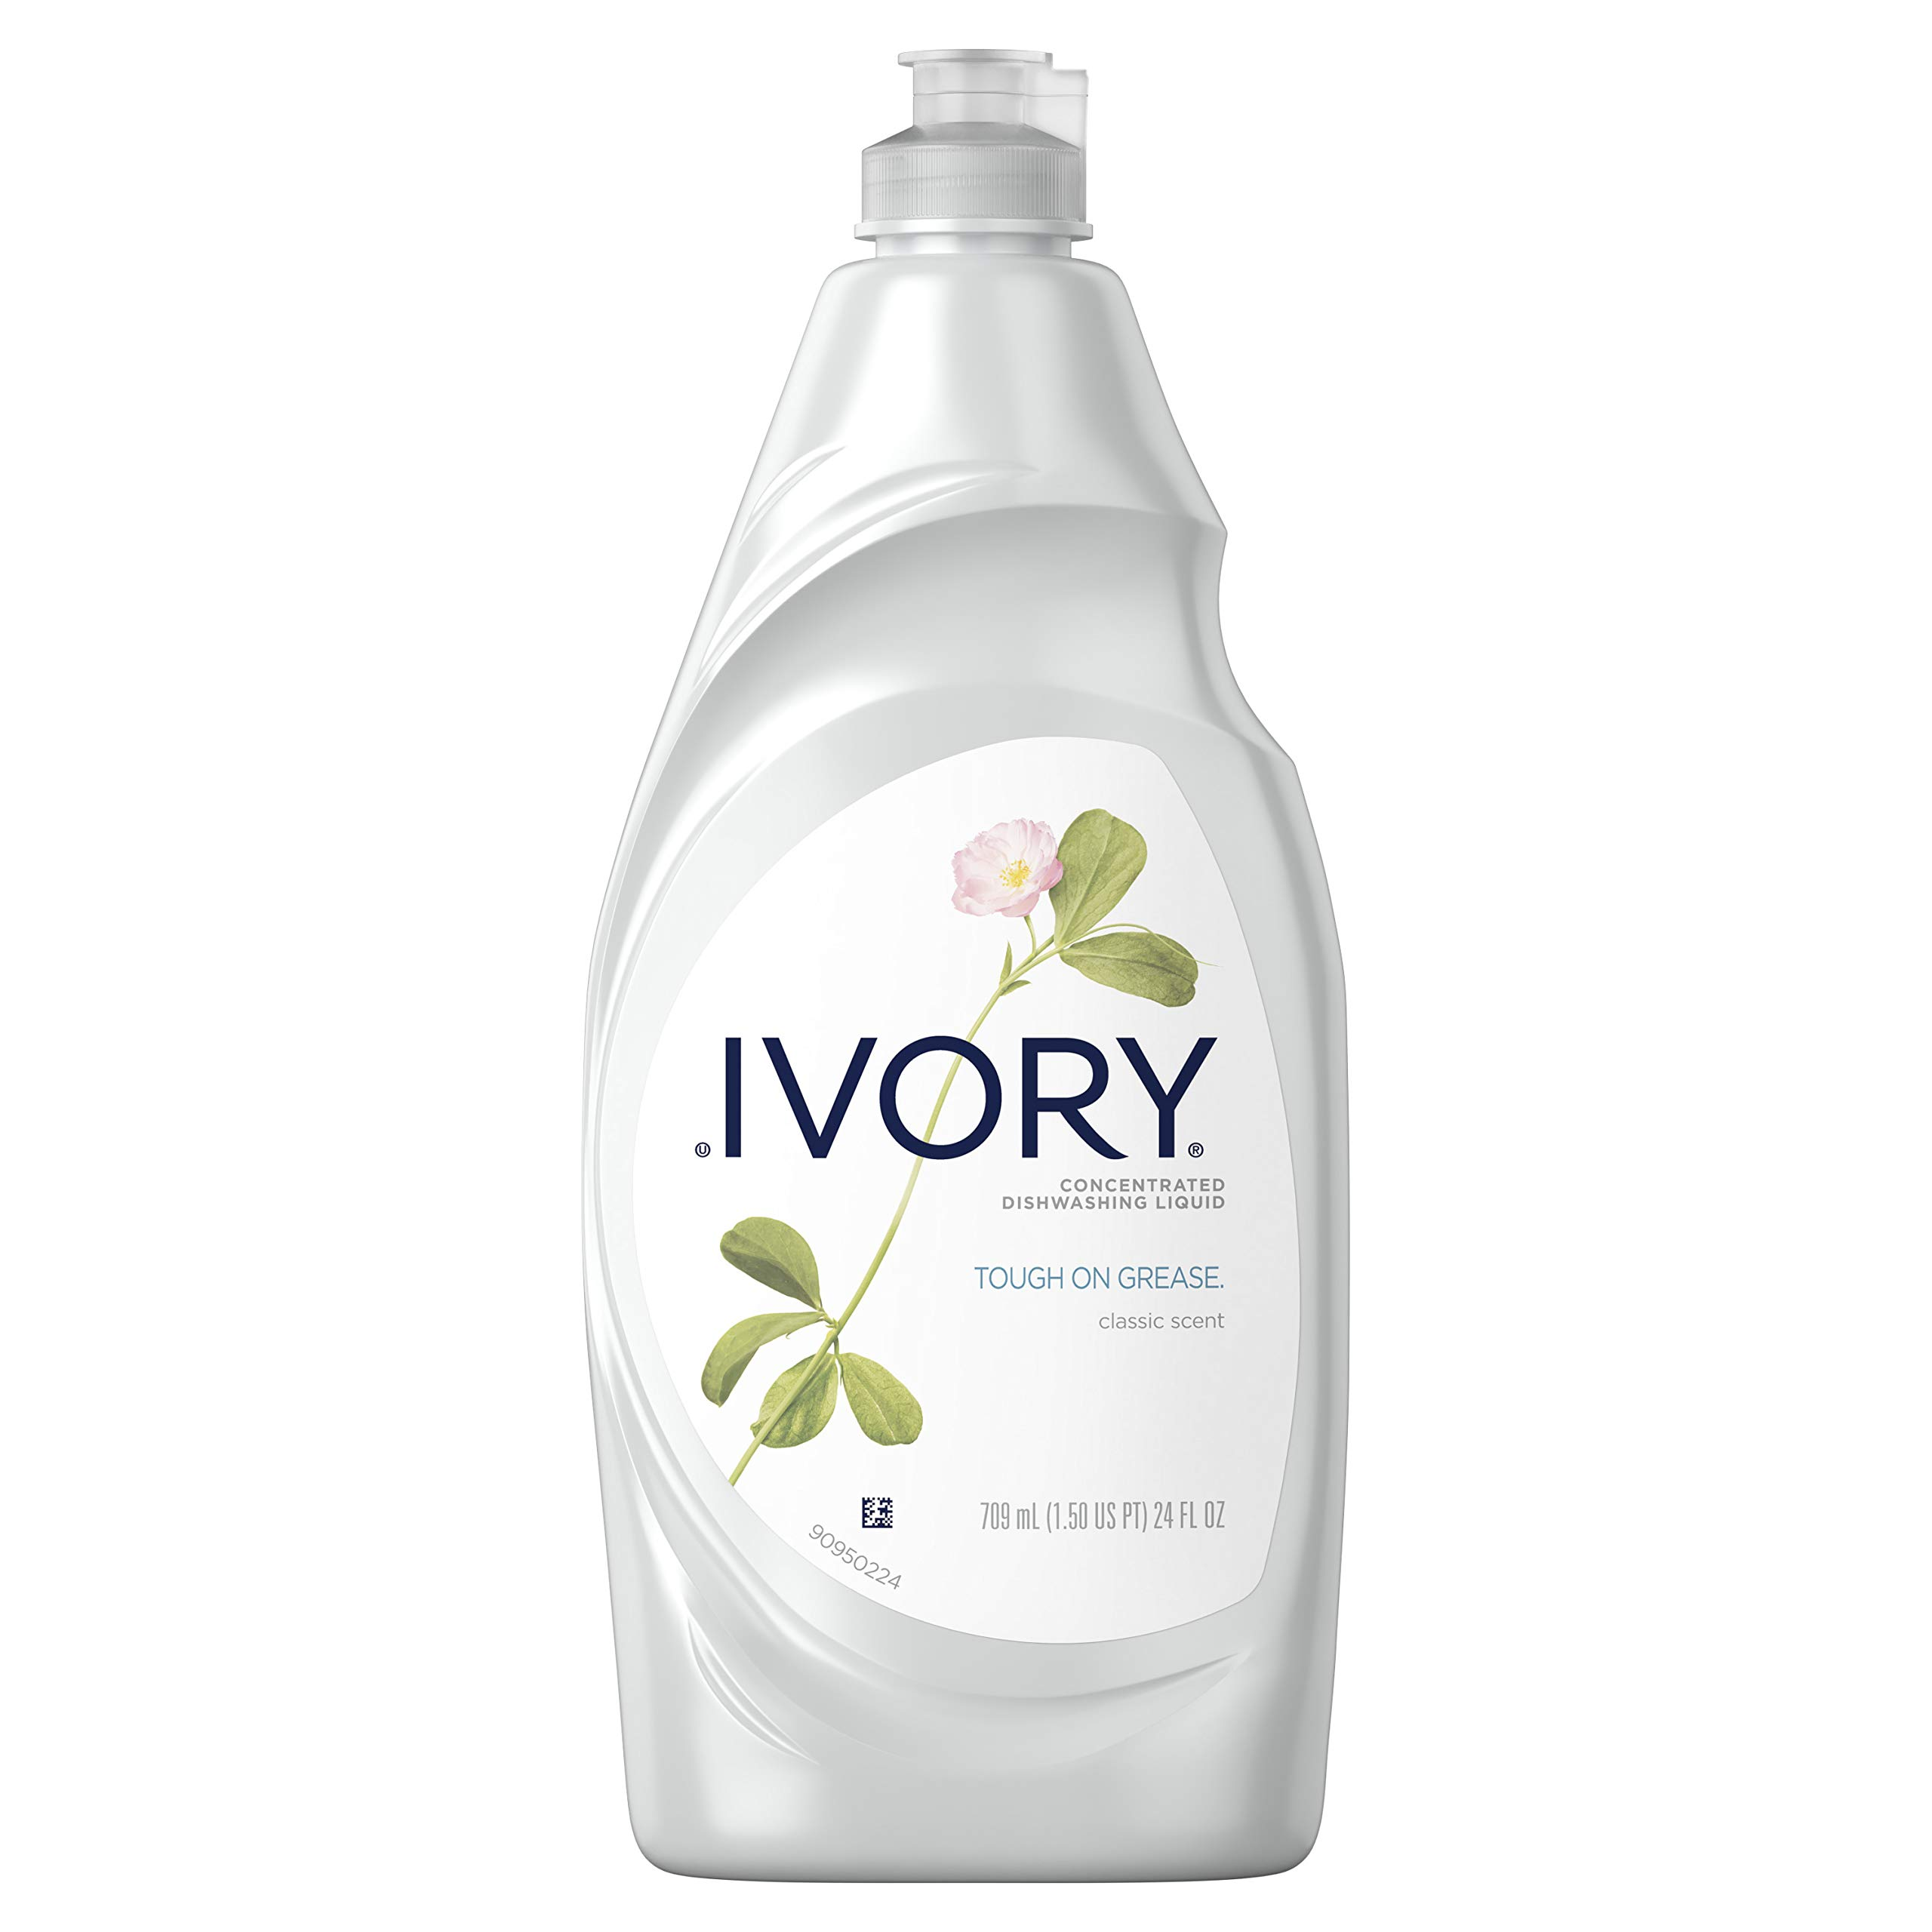 Ivory Concentrated Dishwashing Detergent, Classic Scent, 24 Ounce, (Pack of 3)…